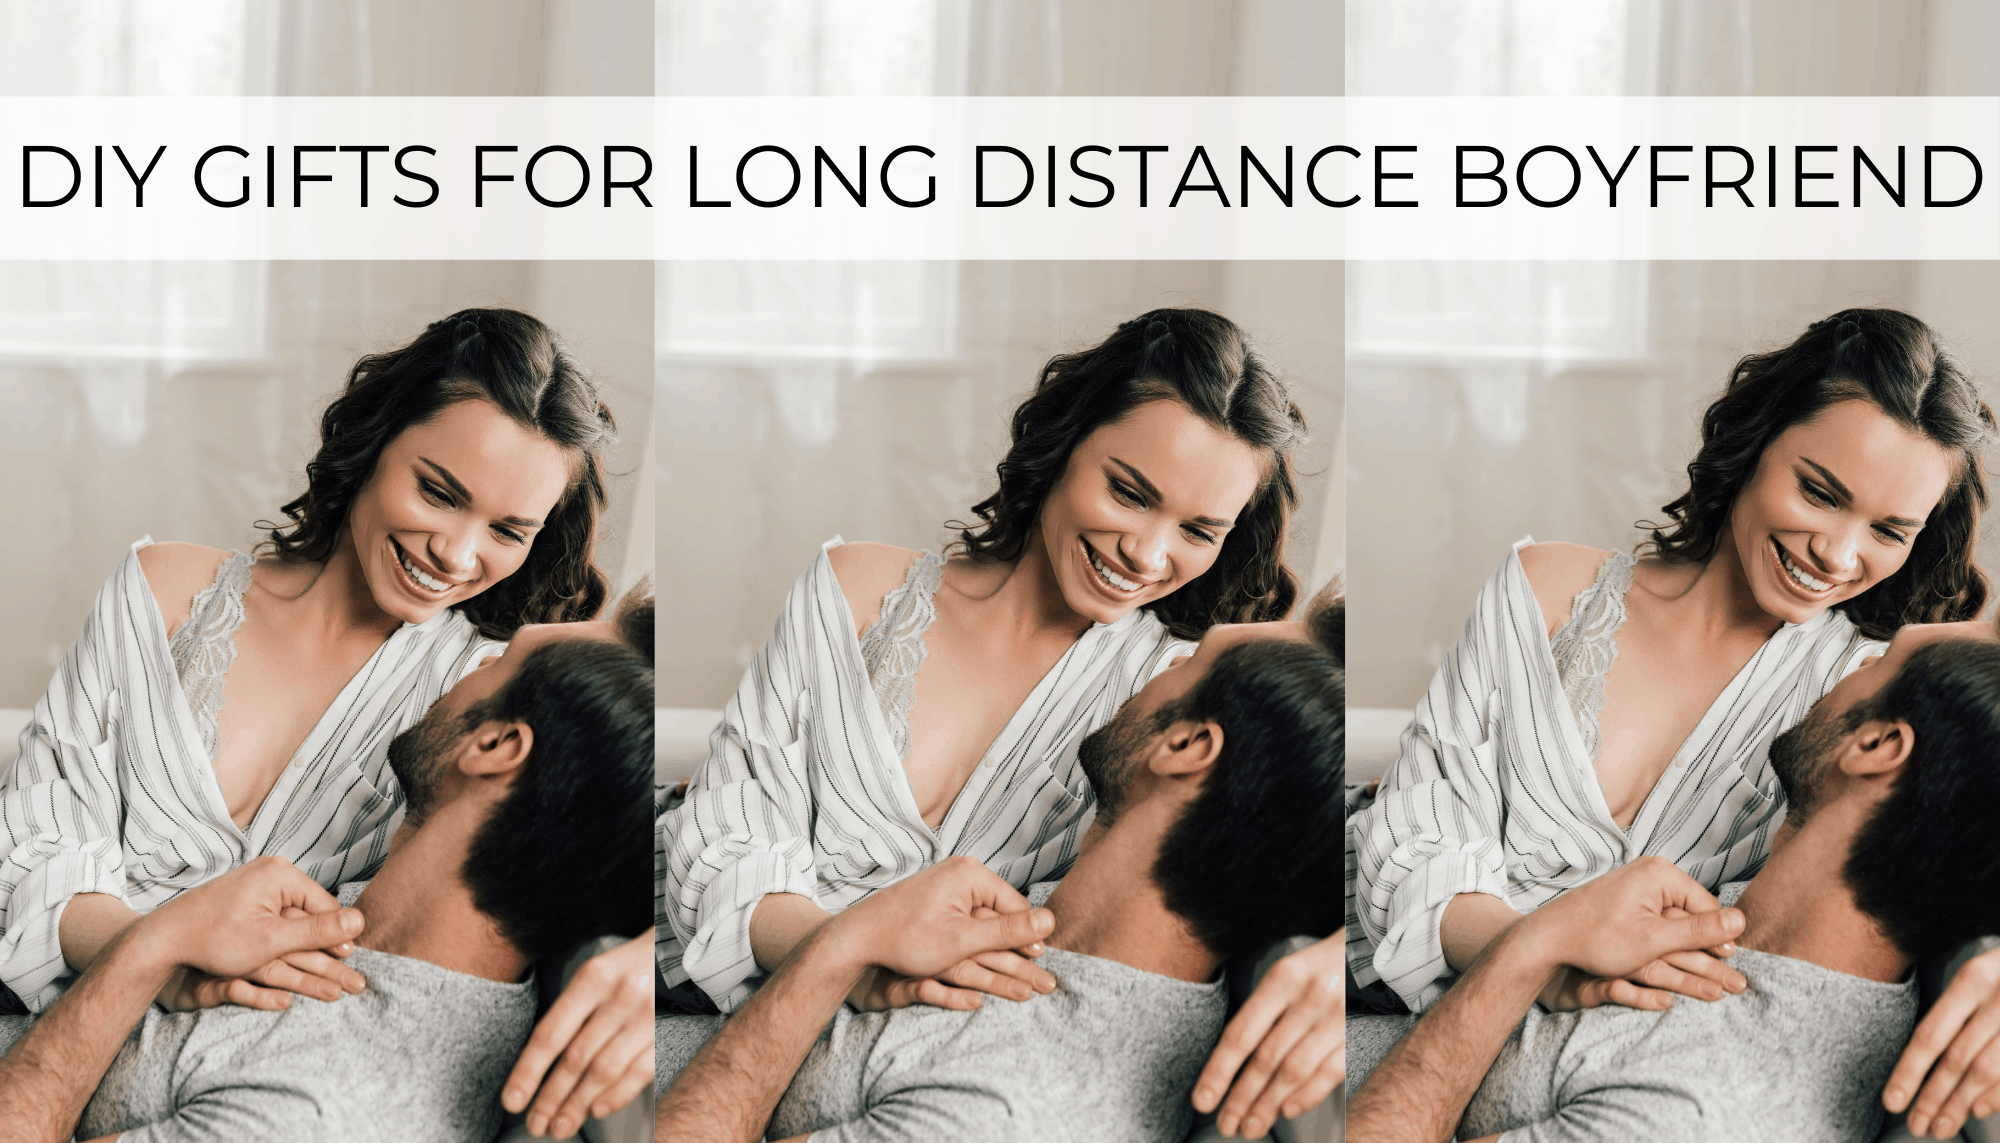 19 Diy Gifts For Long Distance Boyfriend That Show You Care By Sophia Lee